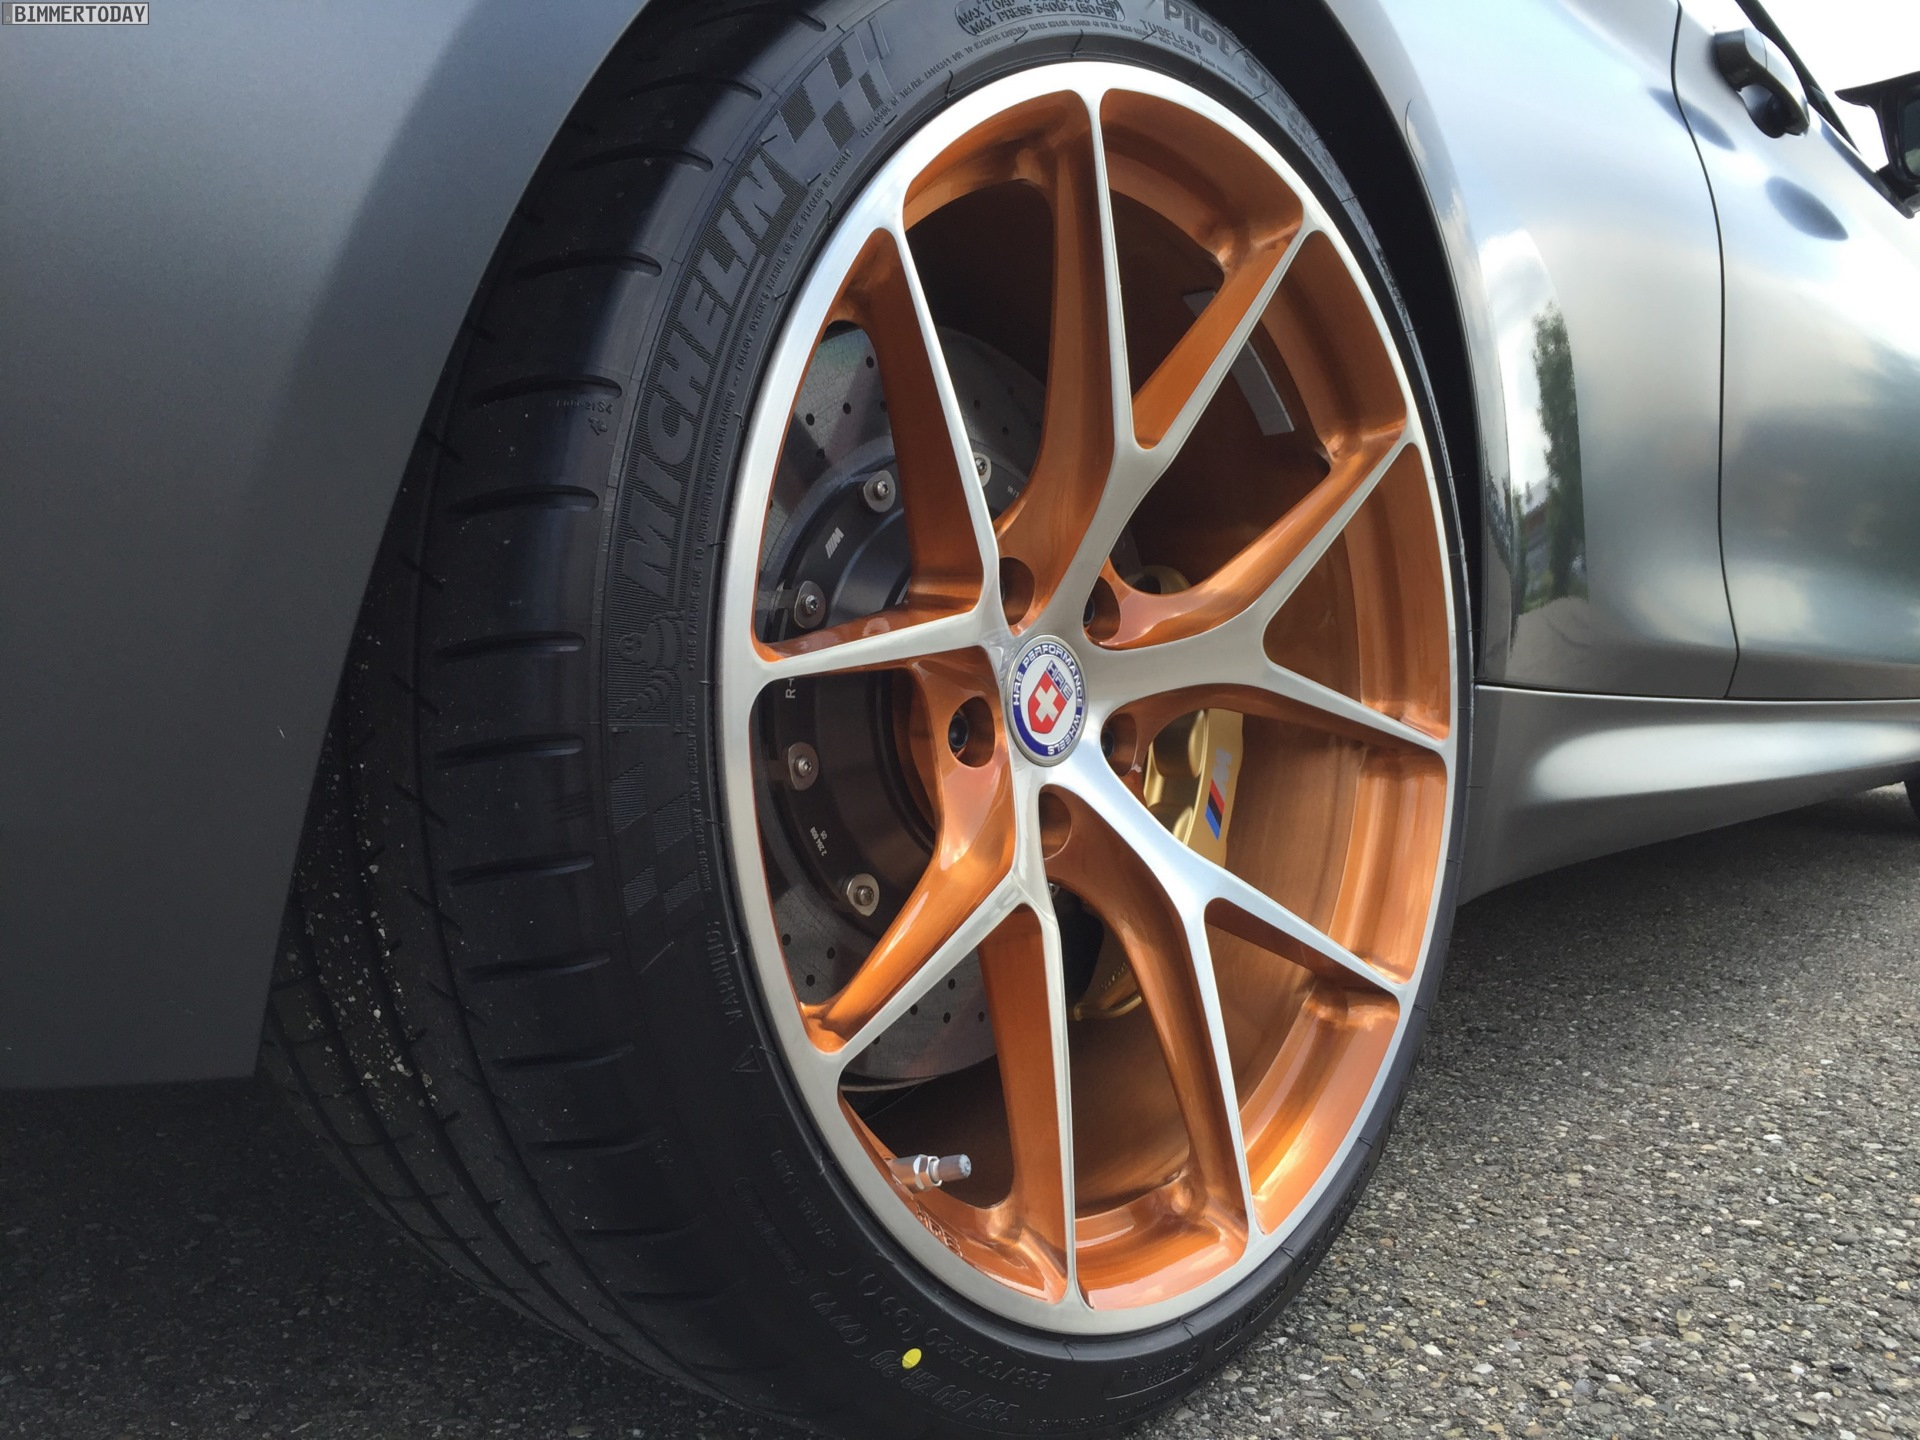 new hre custom wheels for the bmw m4 gts. Black Bedroom Furniture Sets. Home Design Ideas